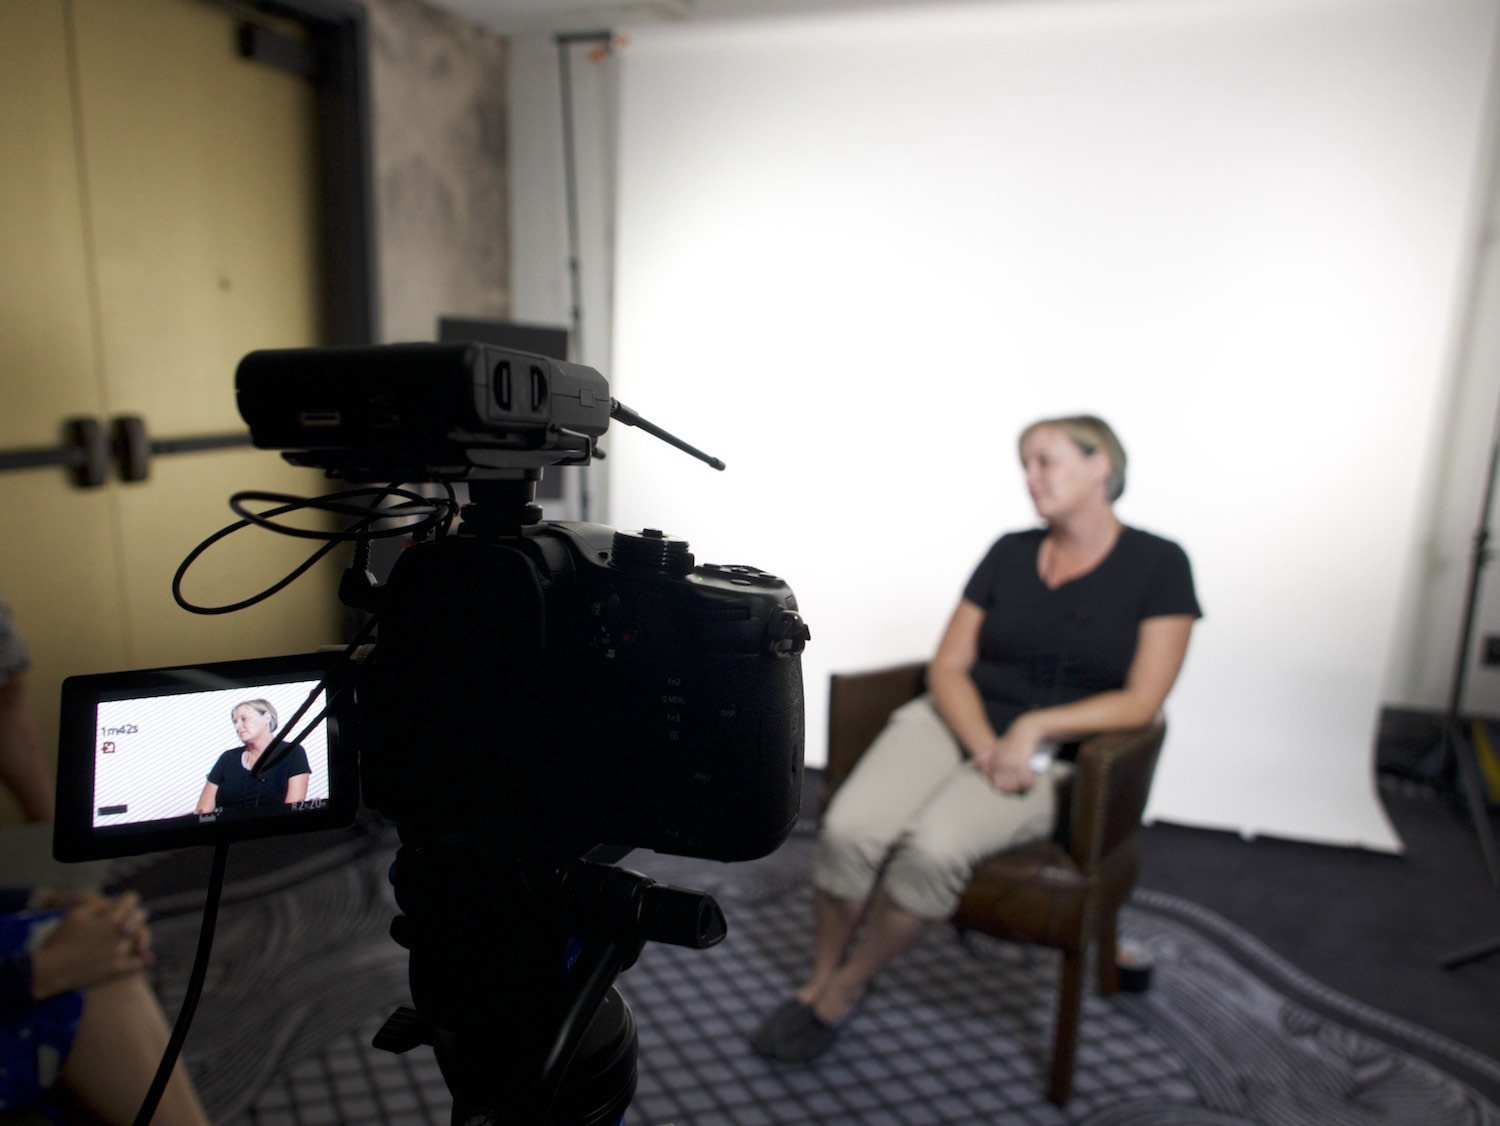 Behind the scenes interview of a woman on a white seamless backdrop focus on camera (Lumix GH4)